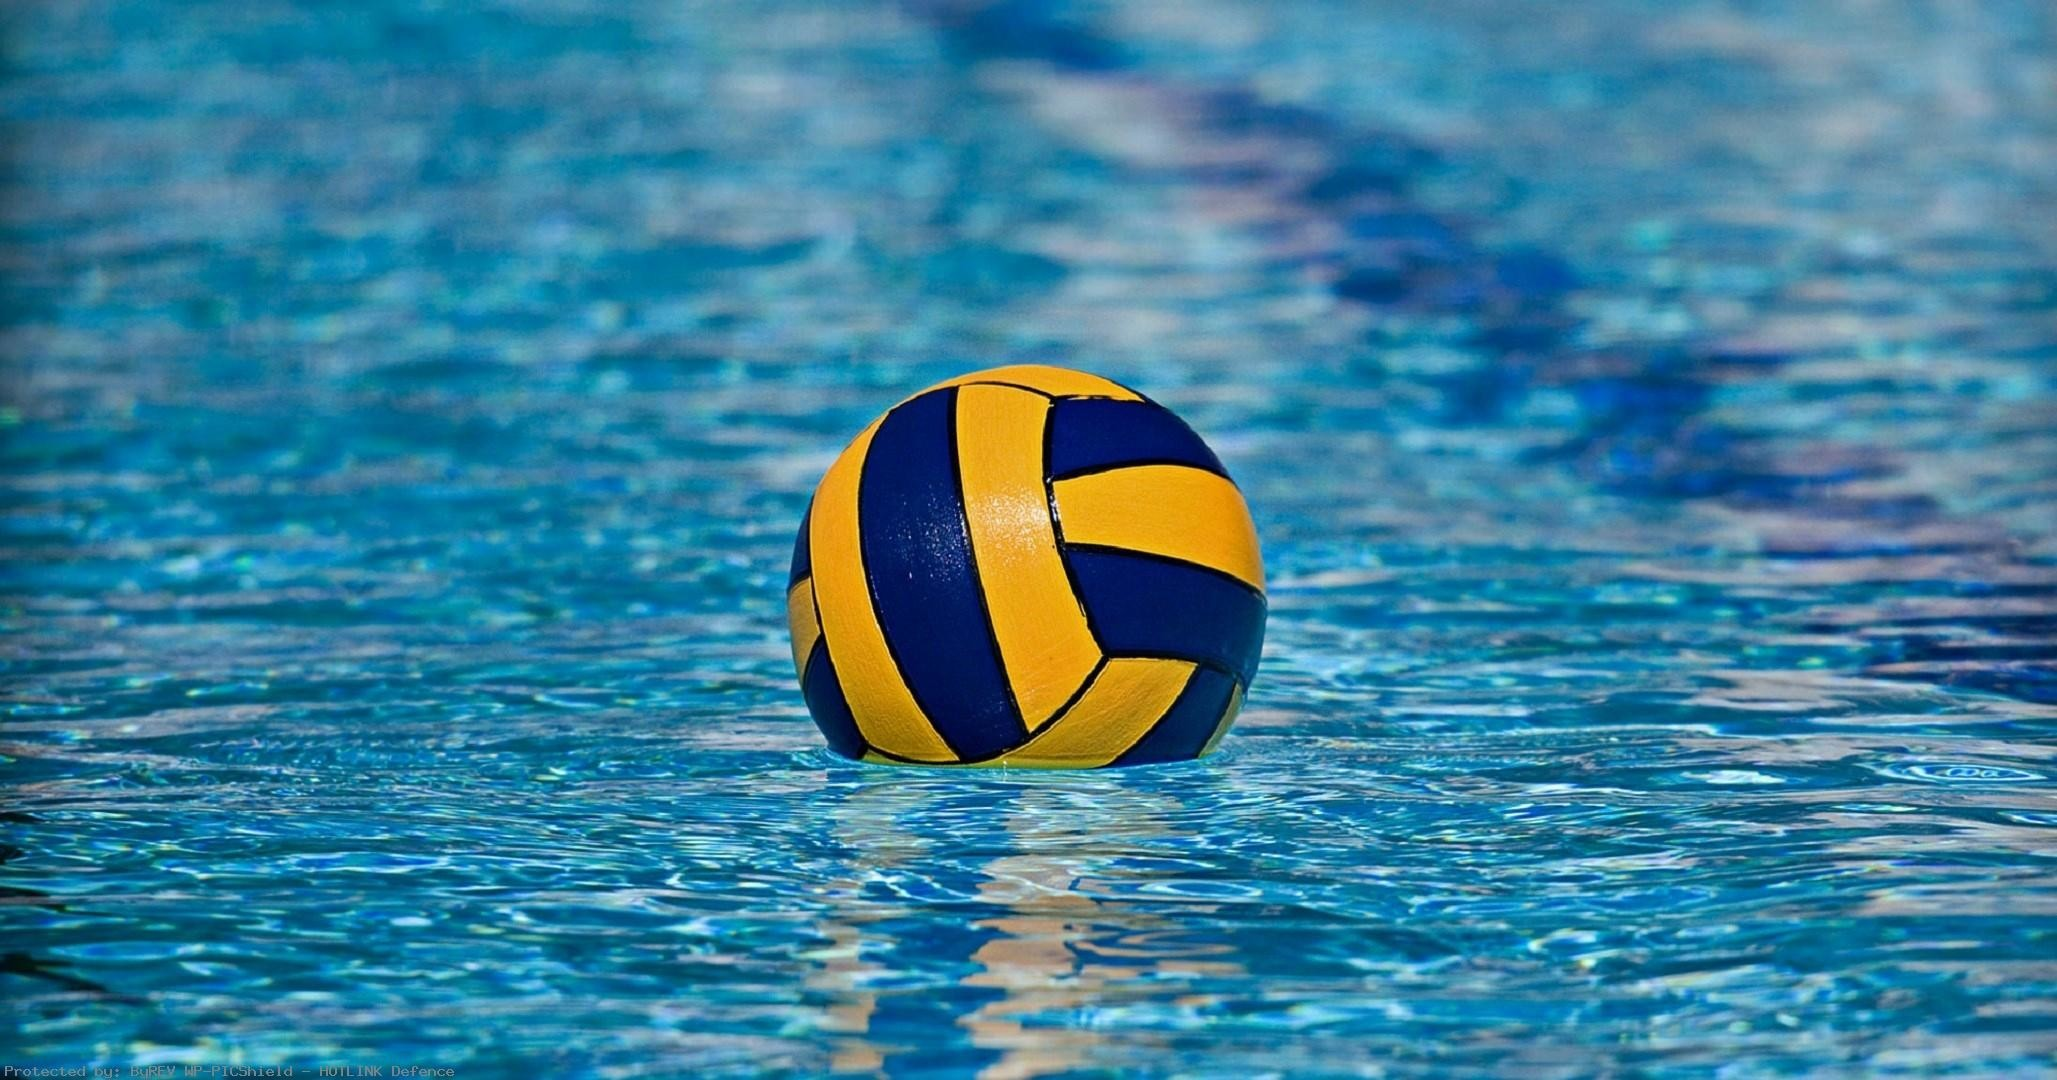 Water polo wallpaper for Wallpaper sources